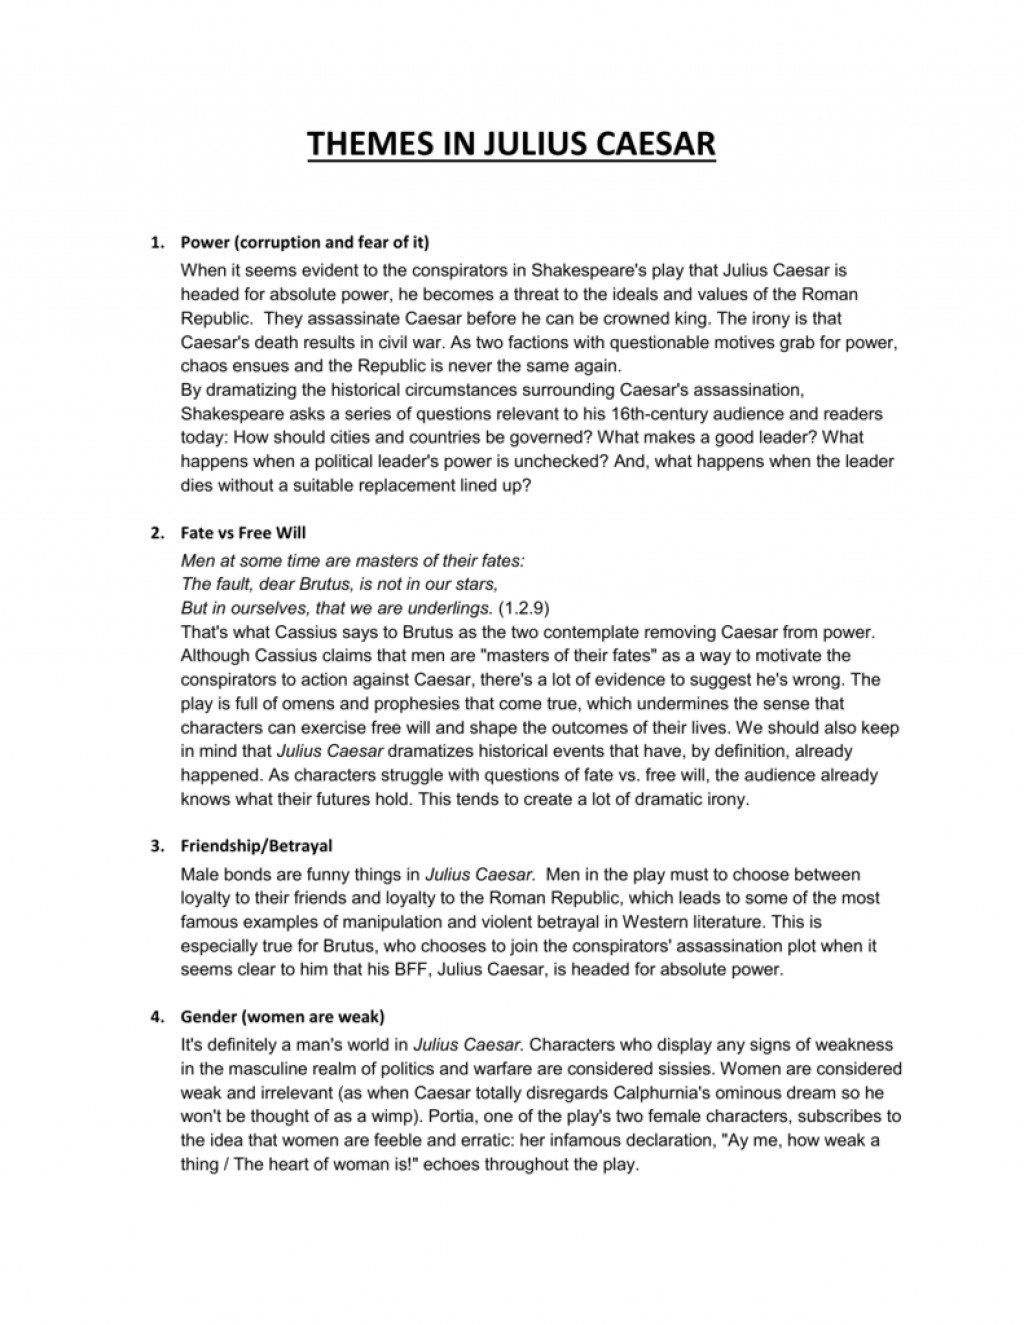 003 Julius Caesar20ssays20ssay Questions Answers Igcse Research Paper Topics Pdf Download Examples Fascinating Of Large